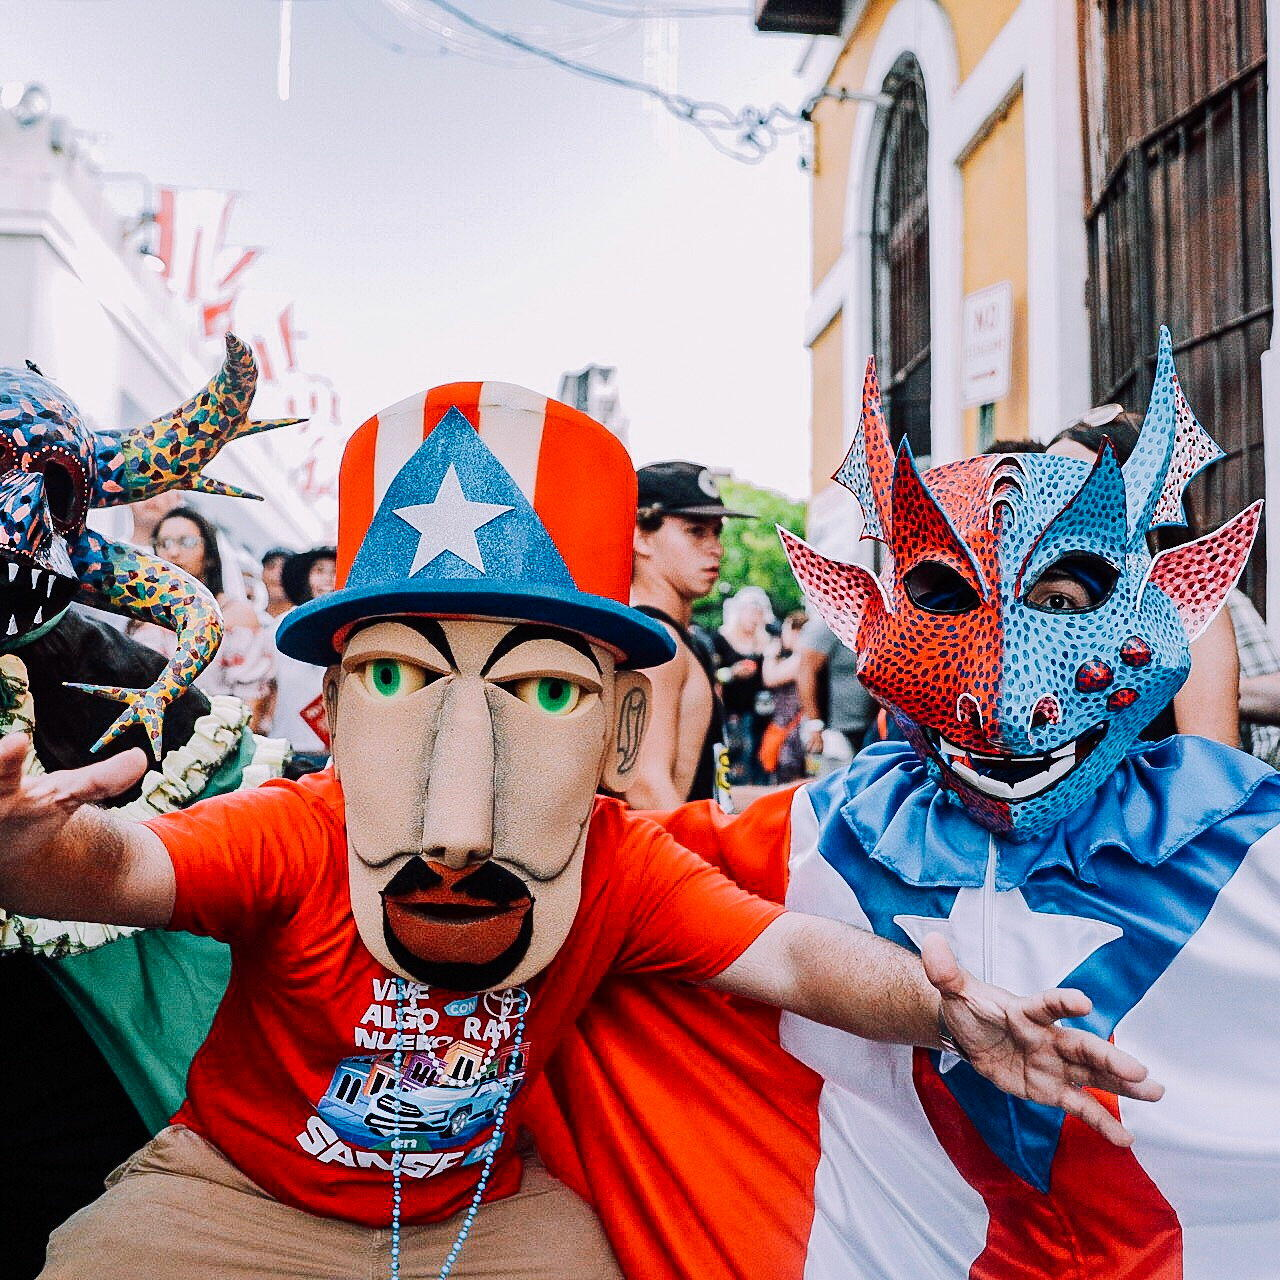 Festival of Calle San Sebastian with people in masks and costumes